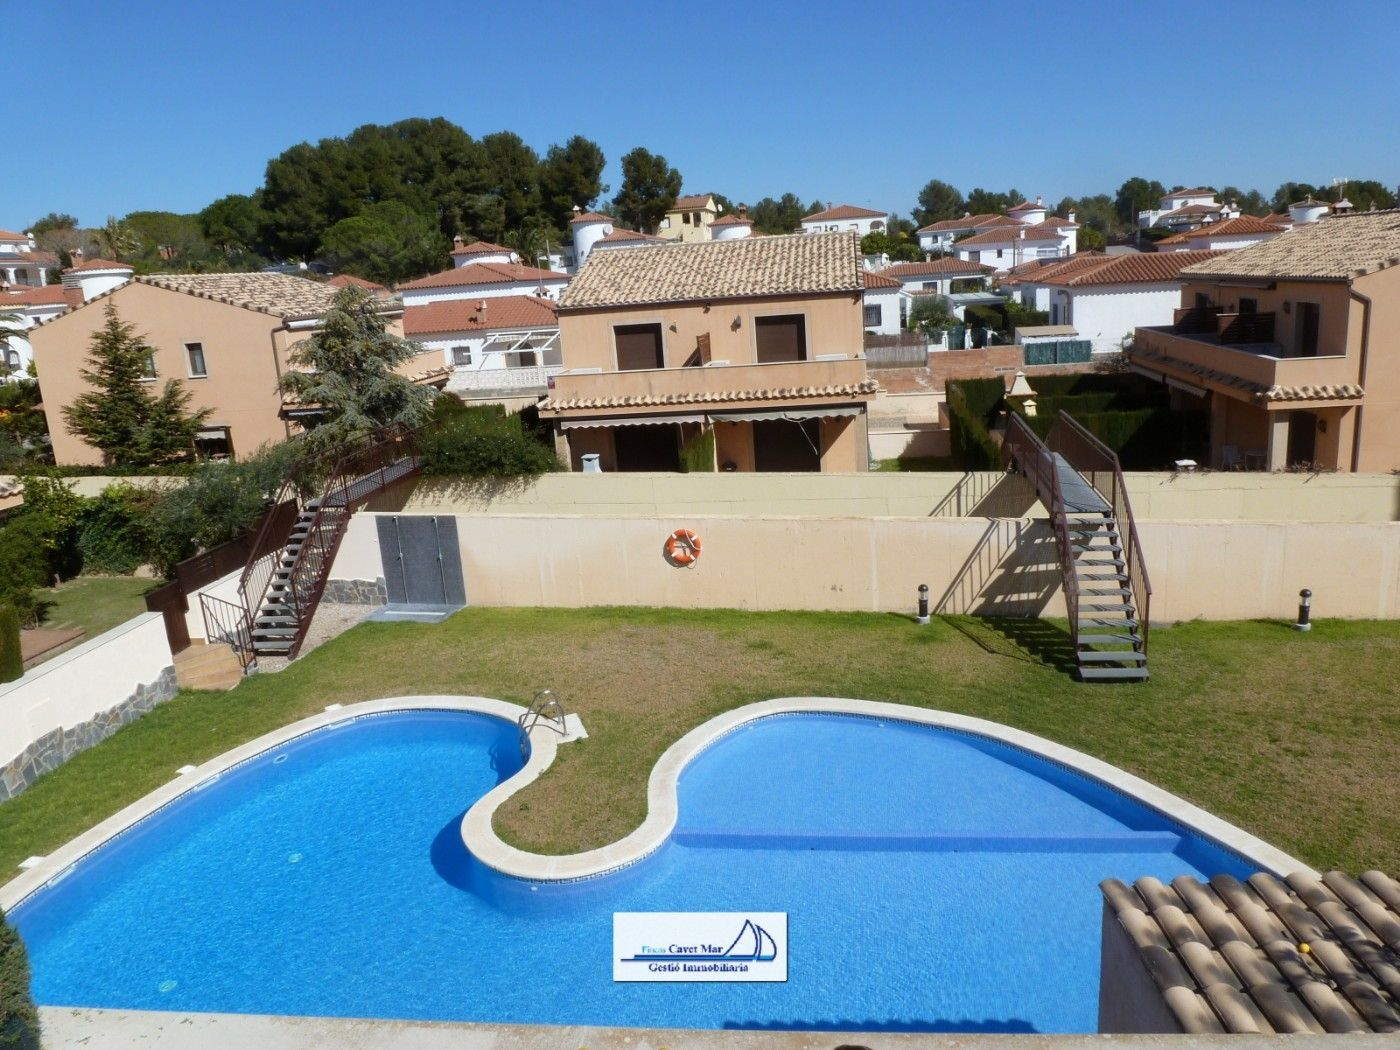 Towny house in Carrer dalies (de les) (ur. masos), 15. Chalet pareado con piscina !